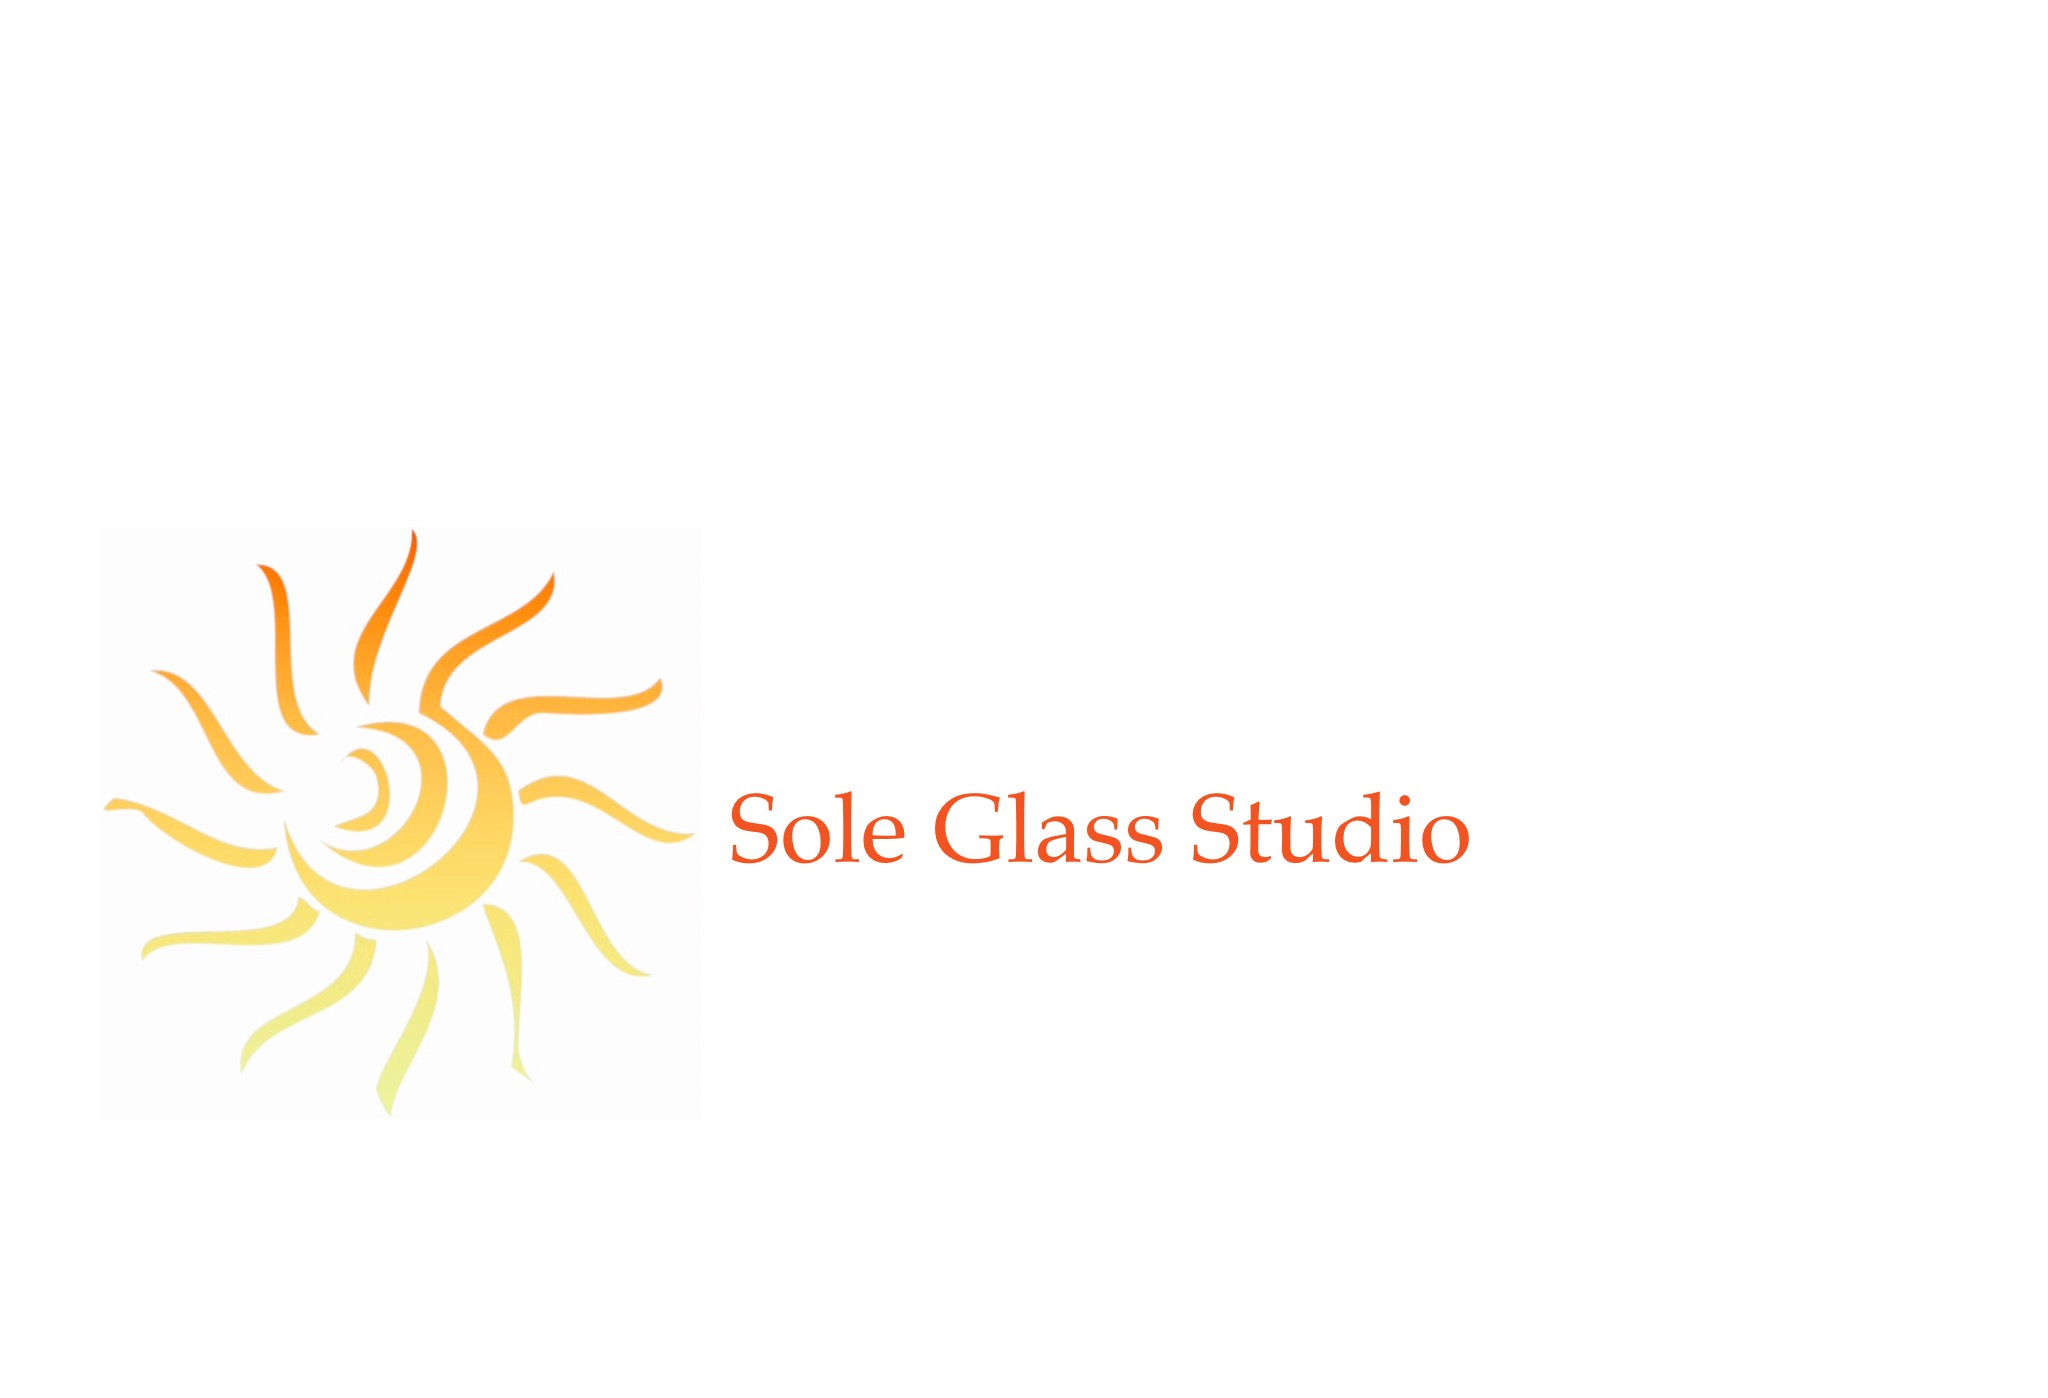 Sole Glass Studio.jpg